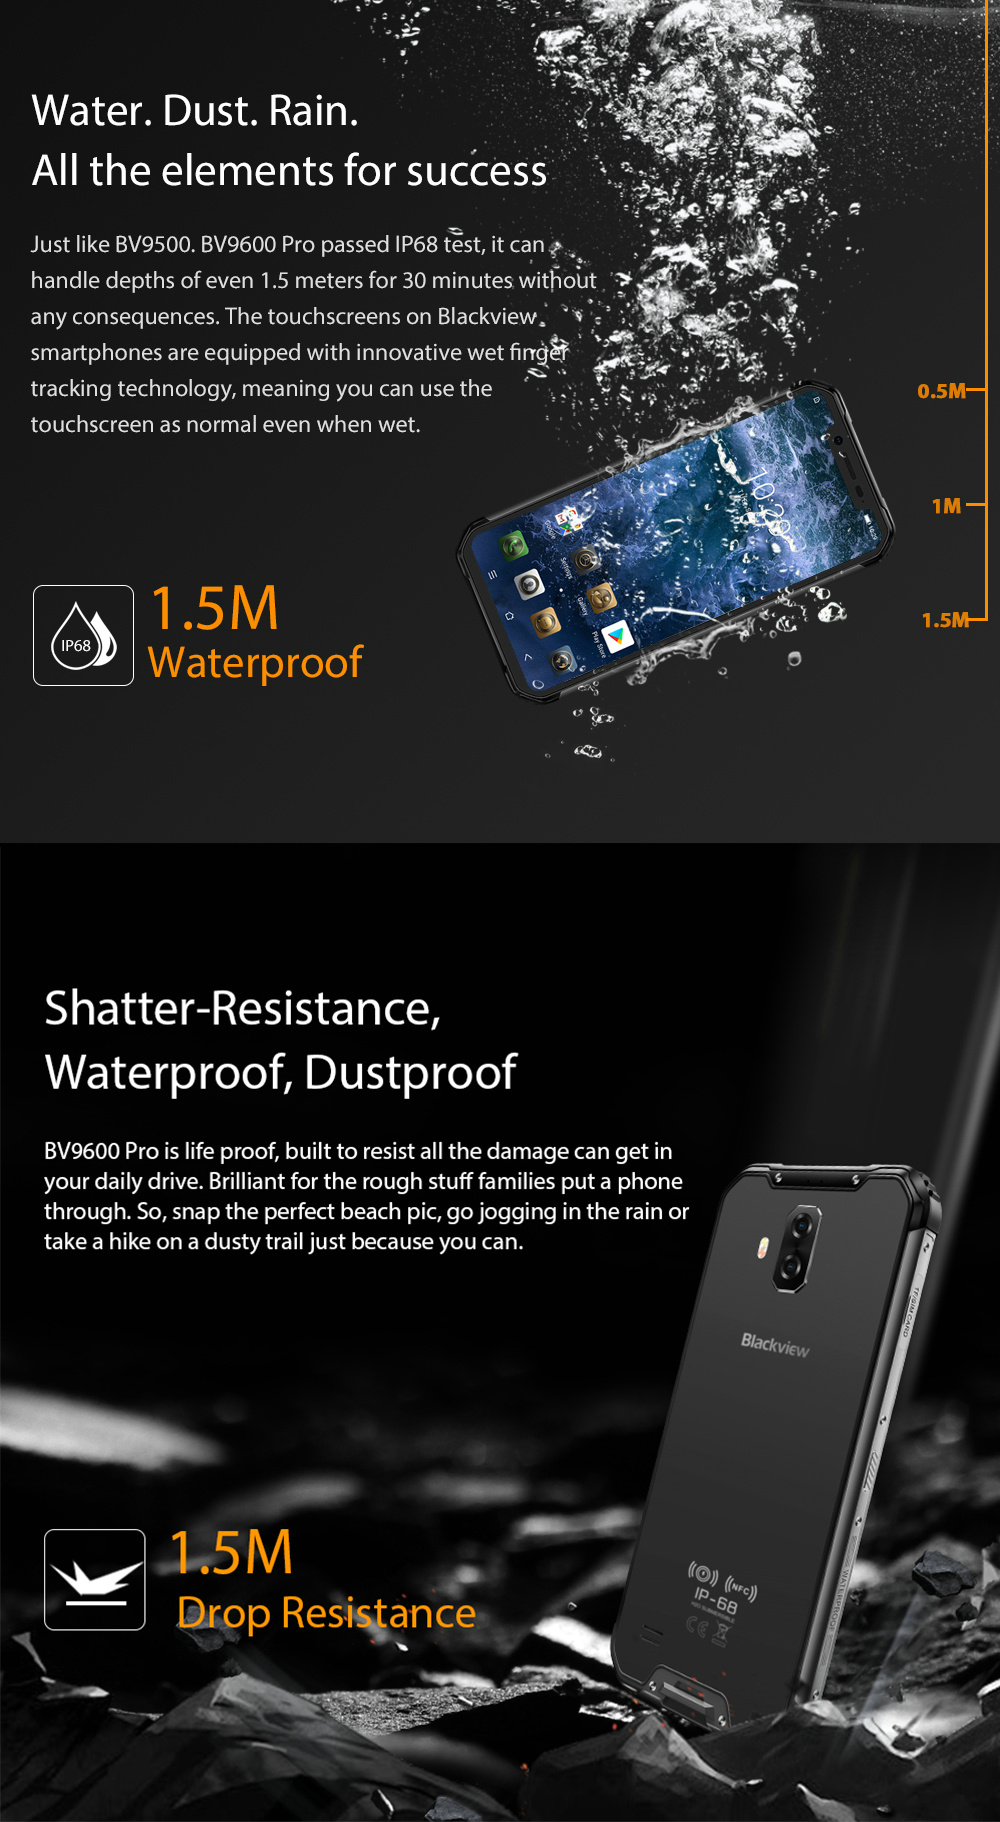 Details about Blackview BV9600 Pro IP68 Waterproof Mobile 6 21